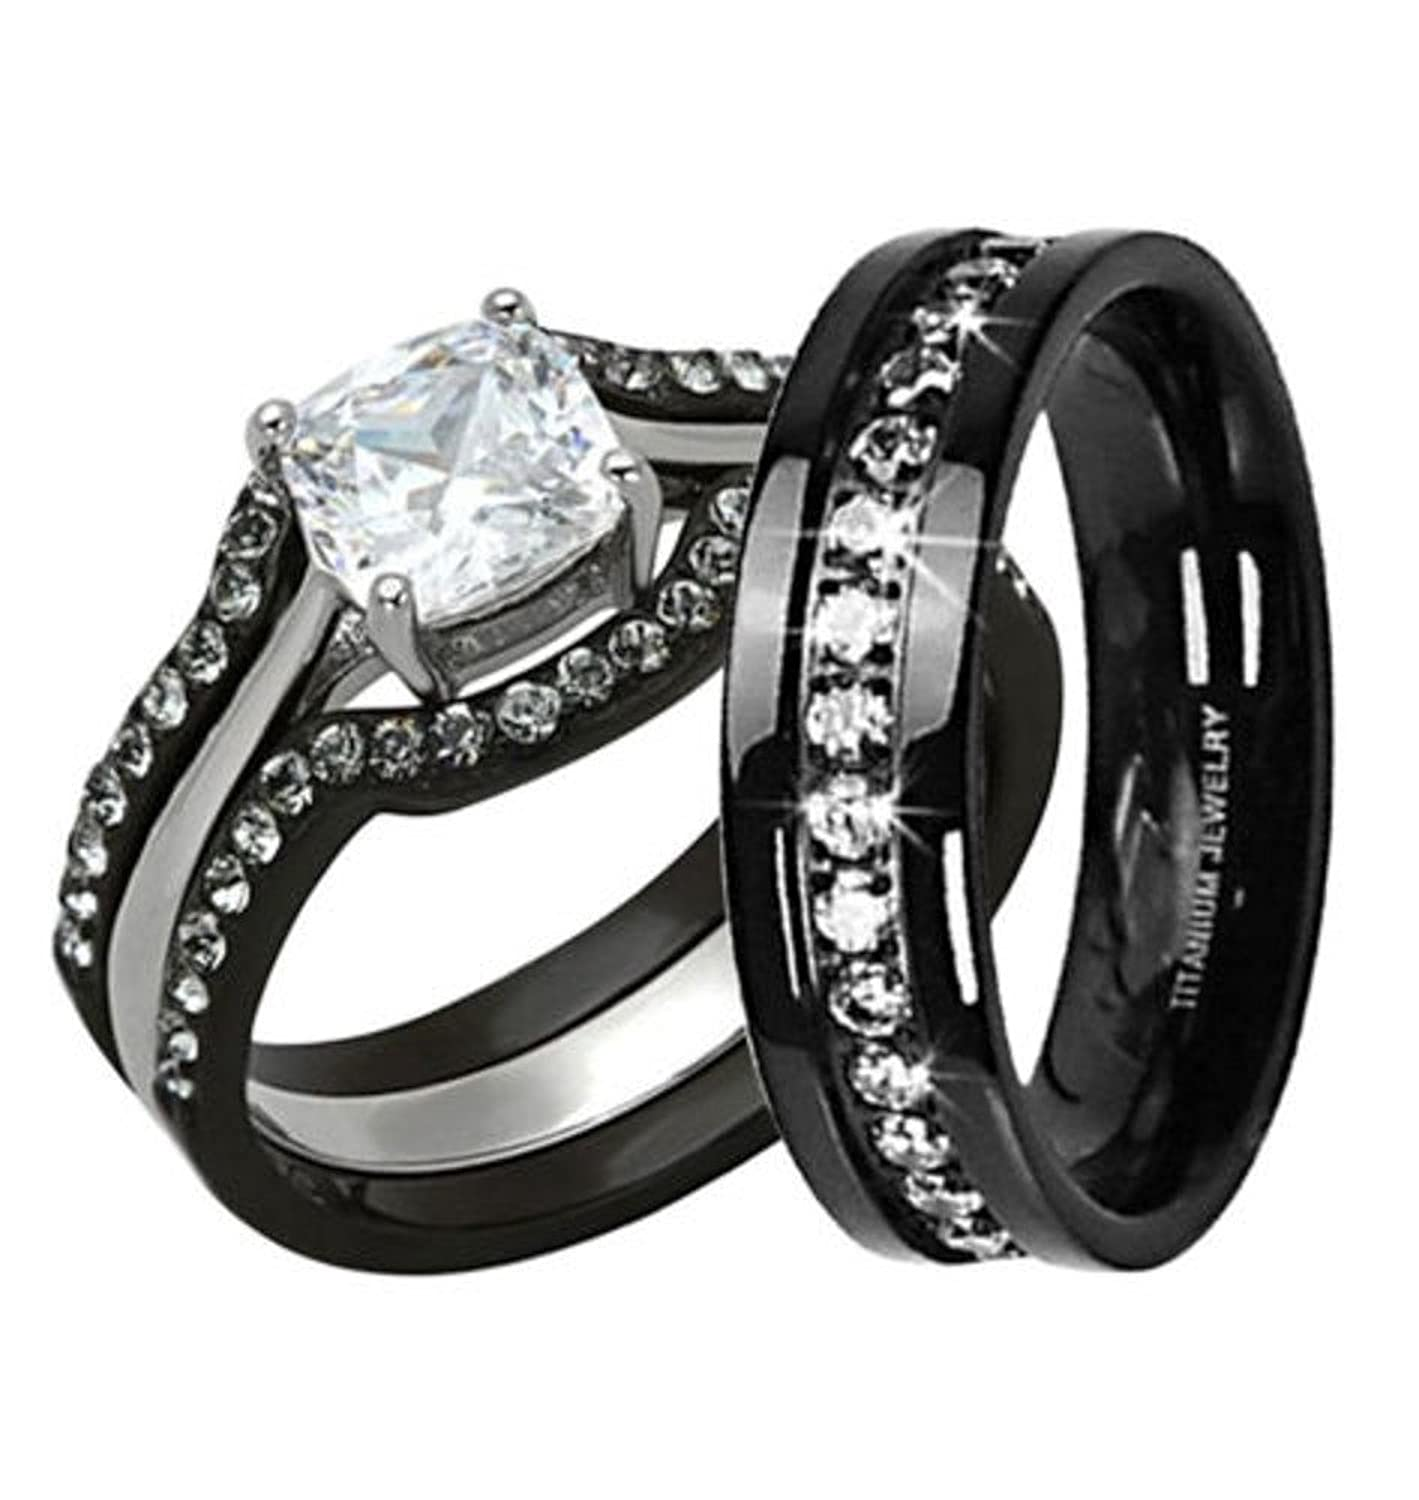 Amazon.com: HIS U0026 HERS 4PC BLACK STAINLESS STEEL U0026 TITANIUM WEDDING  ENGAGEMENT RING Band SET Size Womenu0027s 05 Menu0027s 06: Jewelry